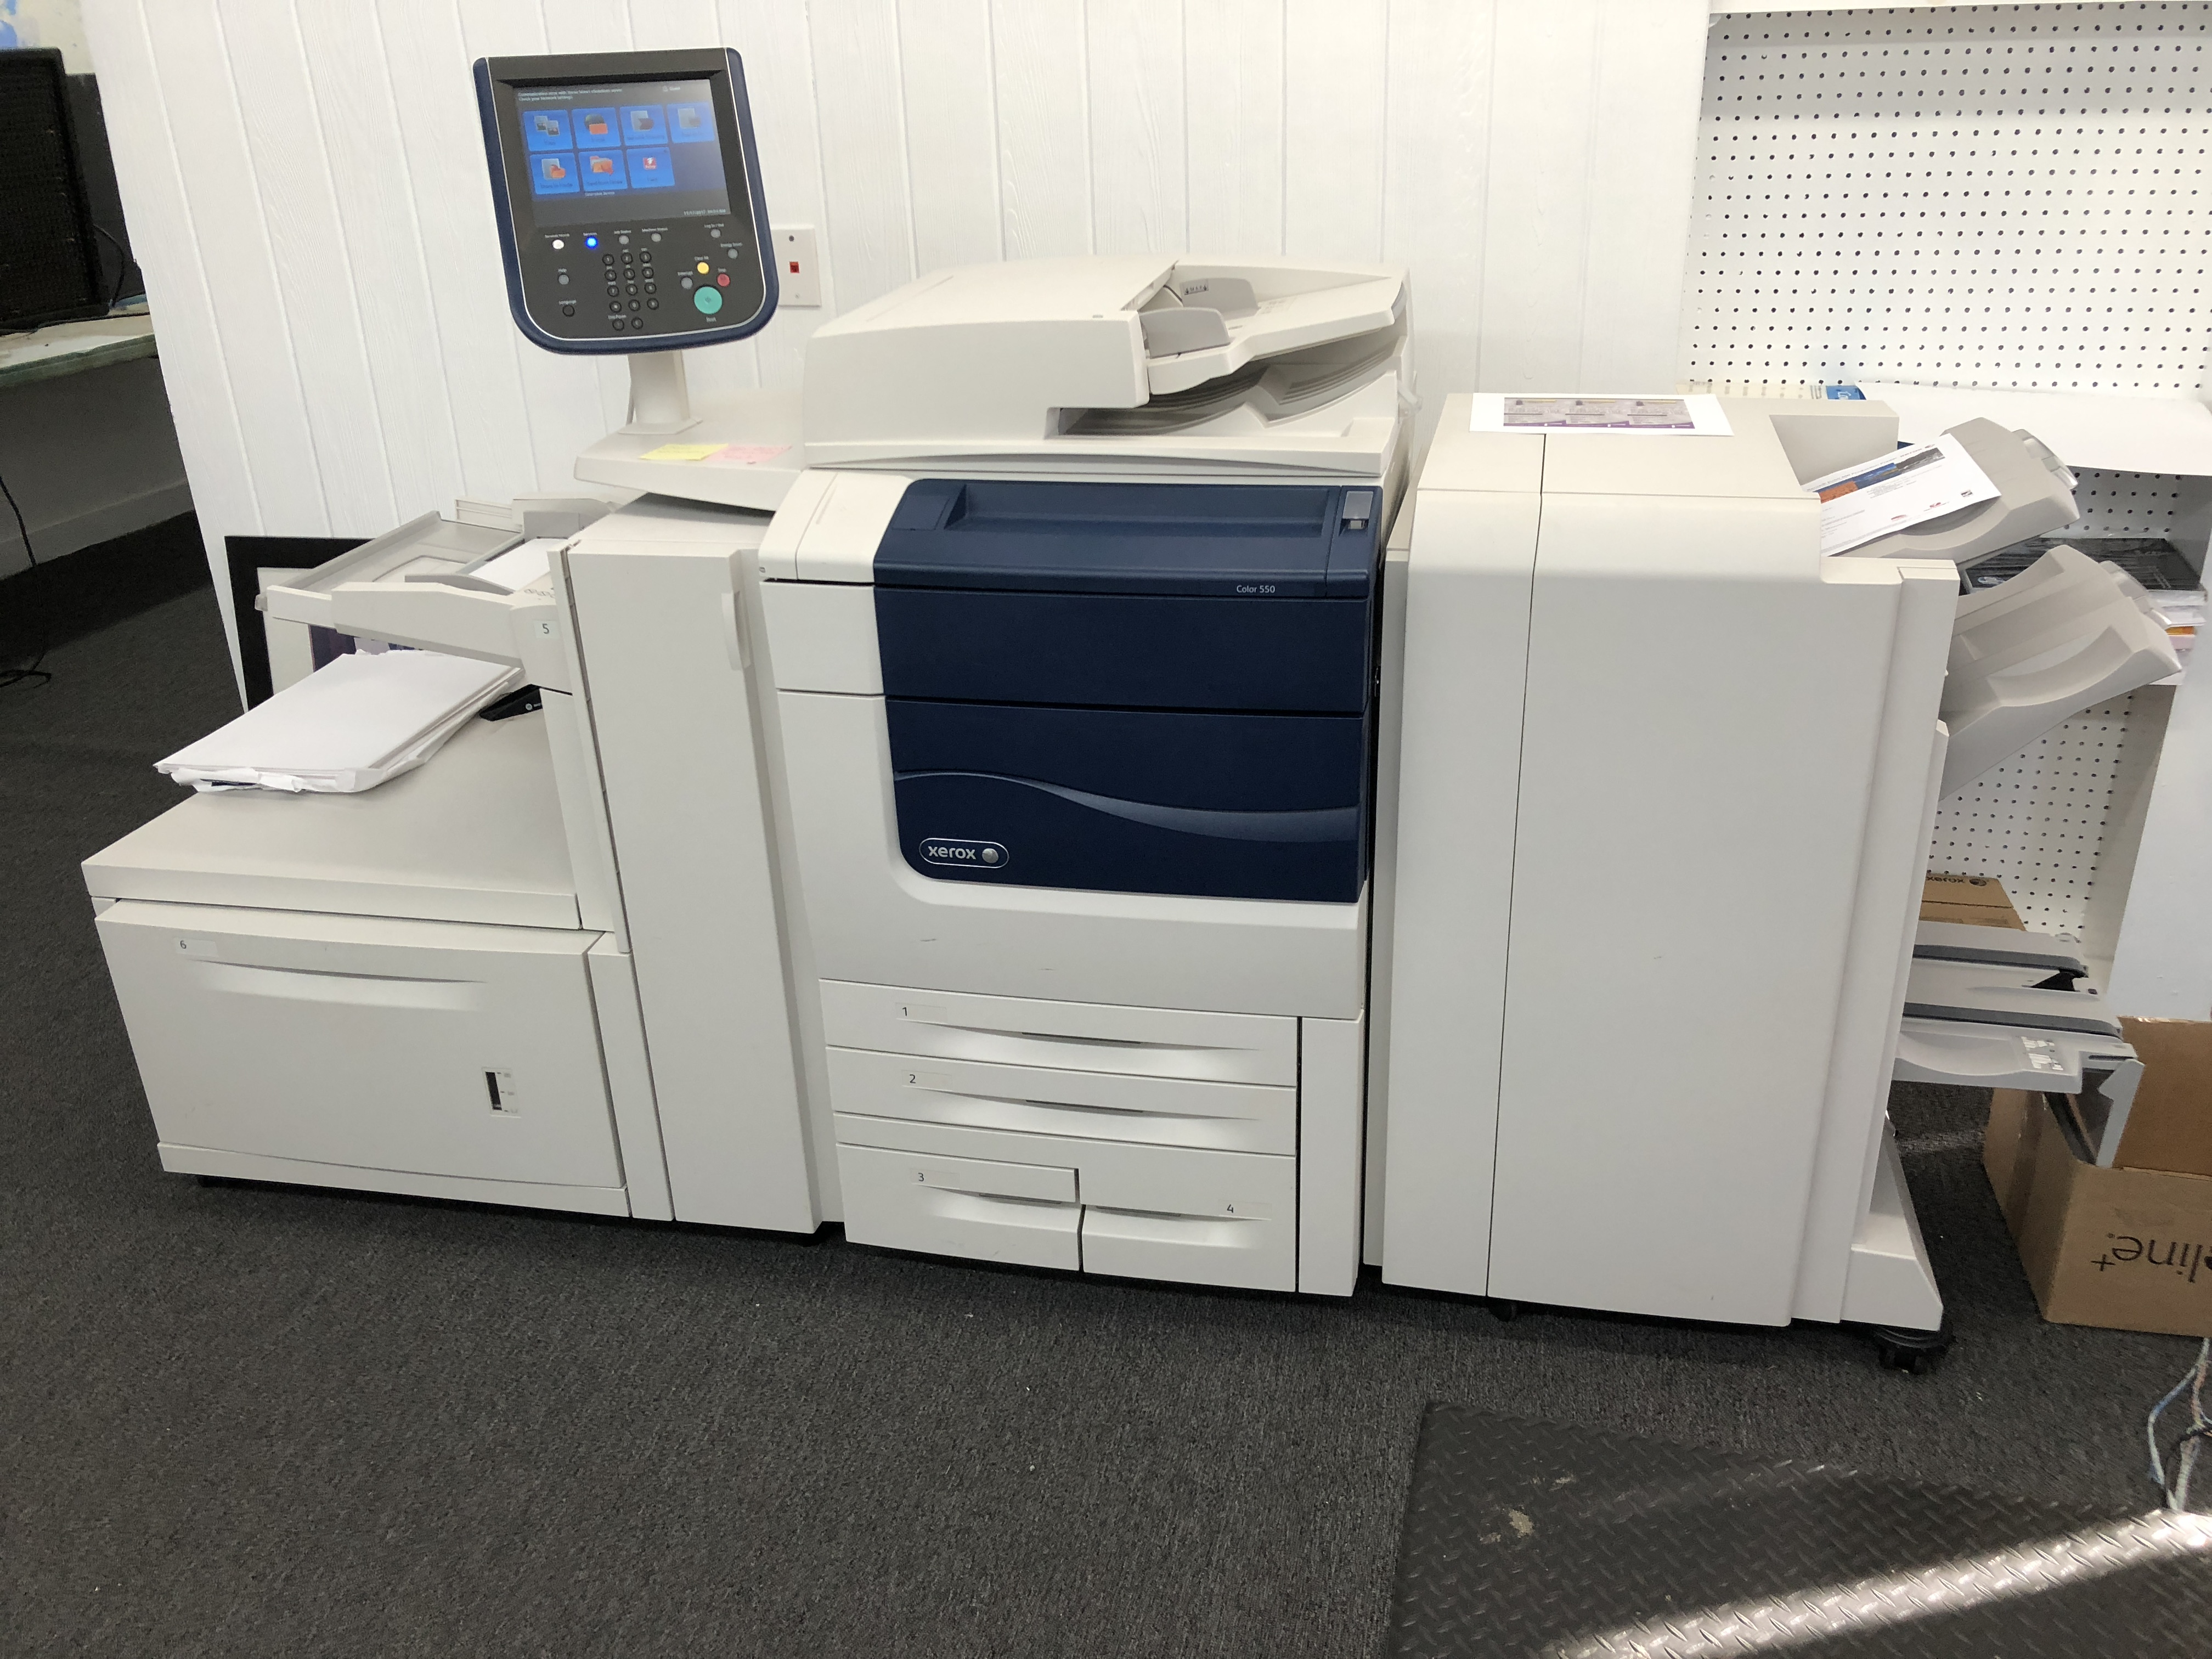 Our Xerox 550 Print Station